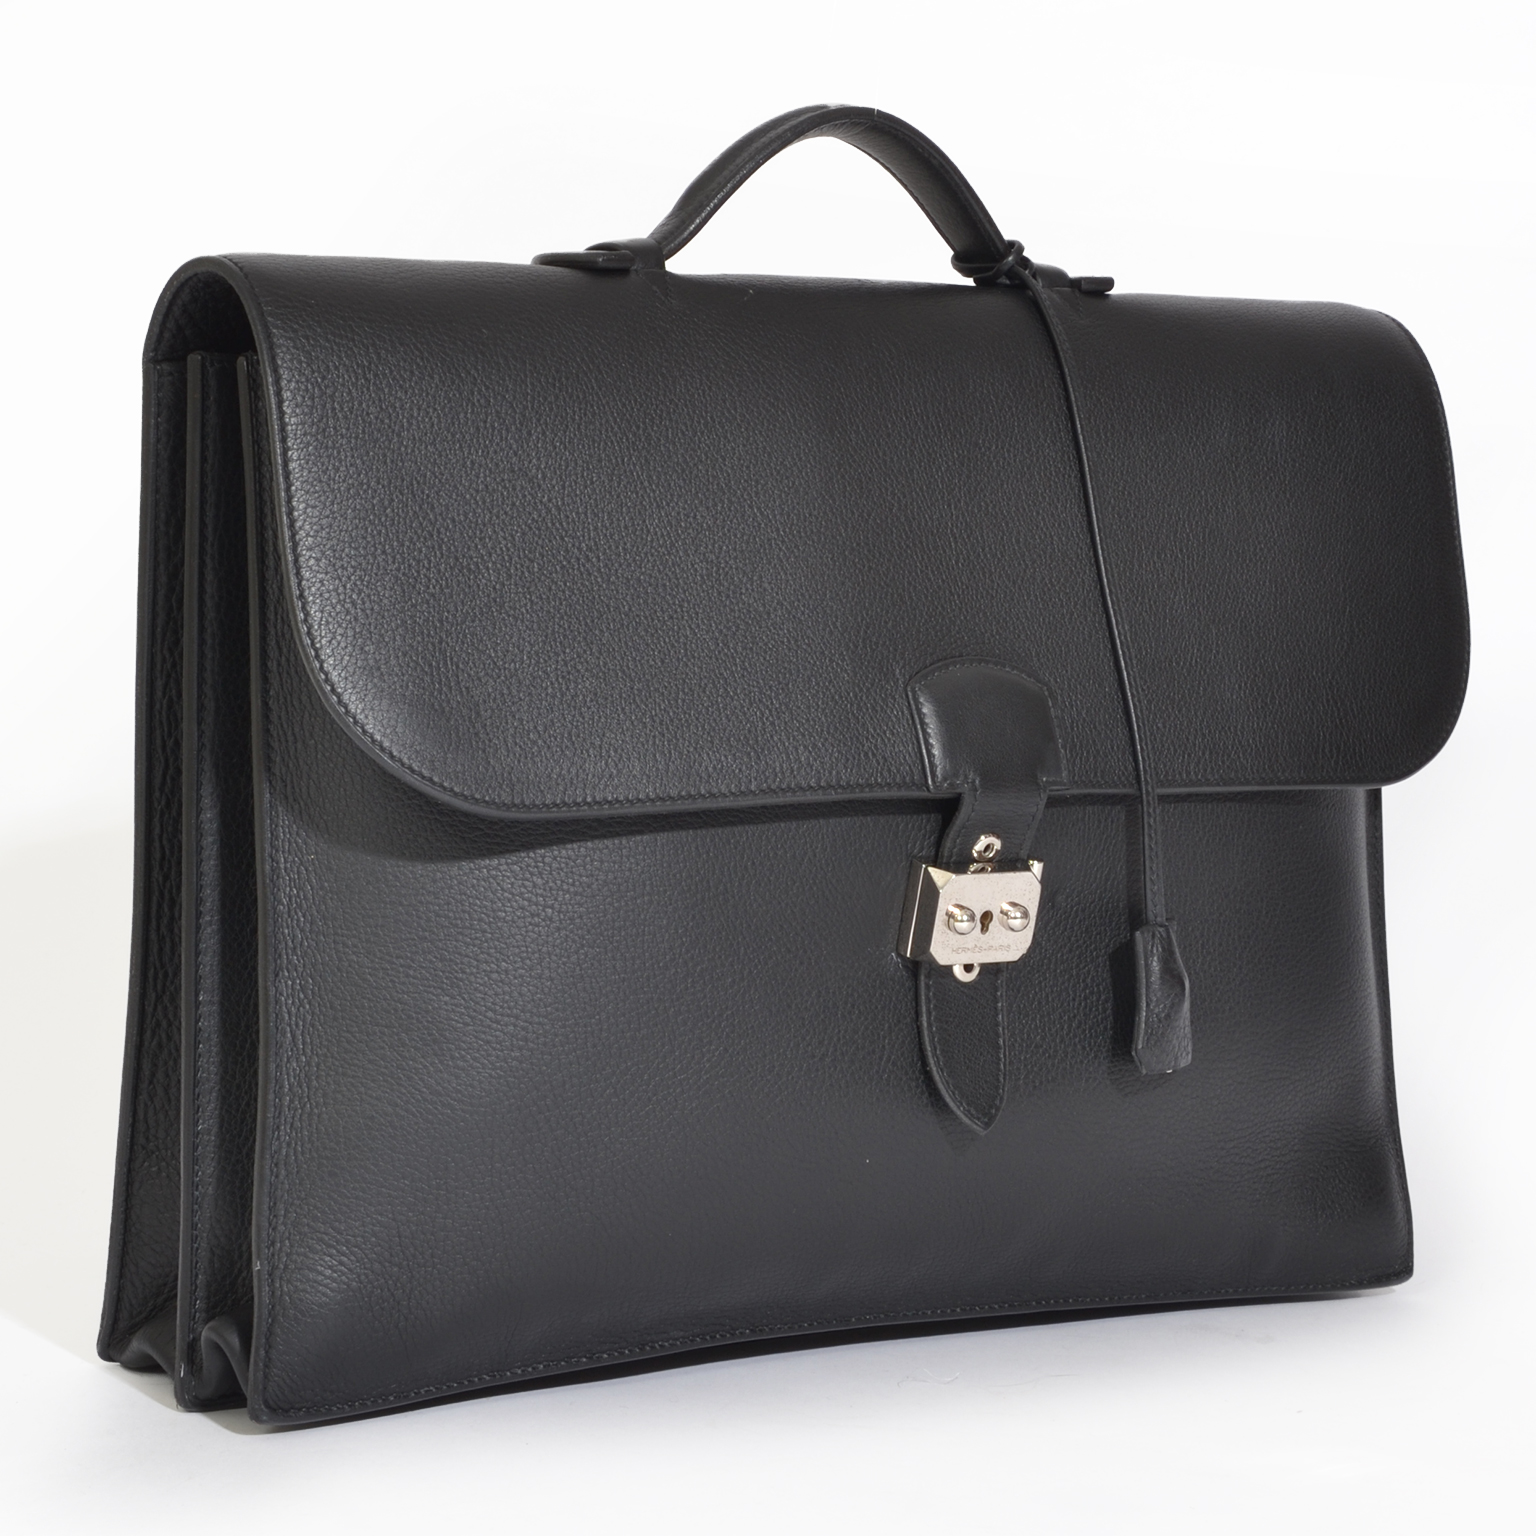 Preowned Hermes Sac à Dépêches Briefcase Togo Black PHW.   Shop secondhand Hermes Clutches at LabelLOV vintage webshop. Safe and secure online shopping!